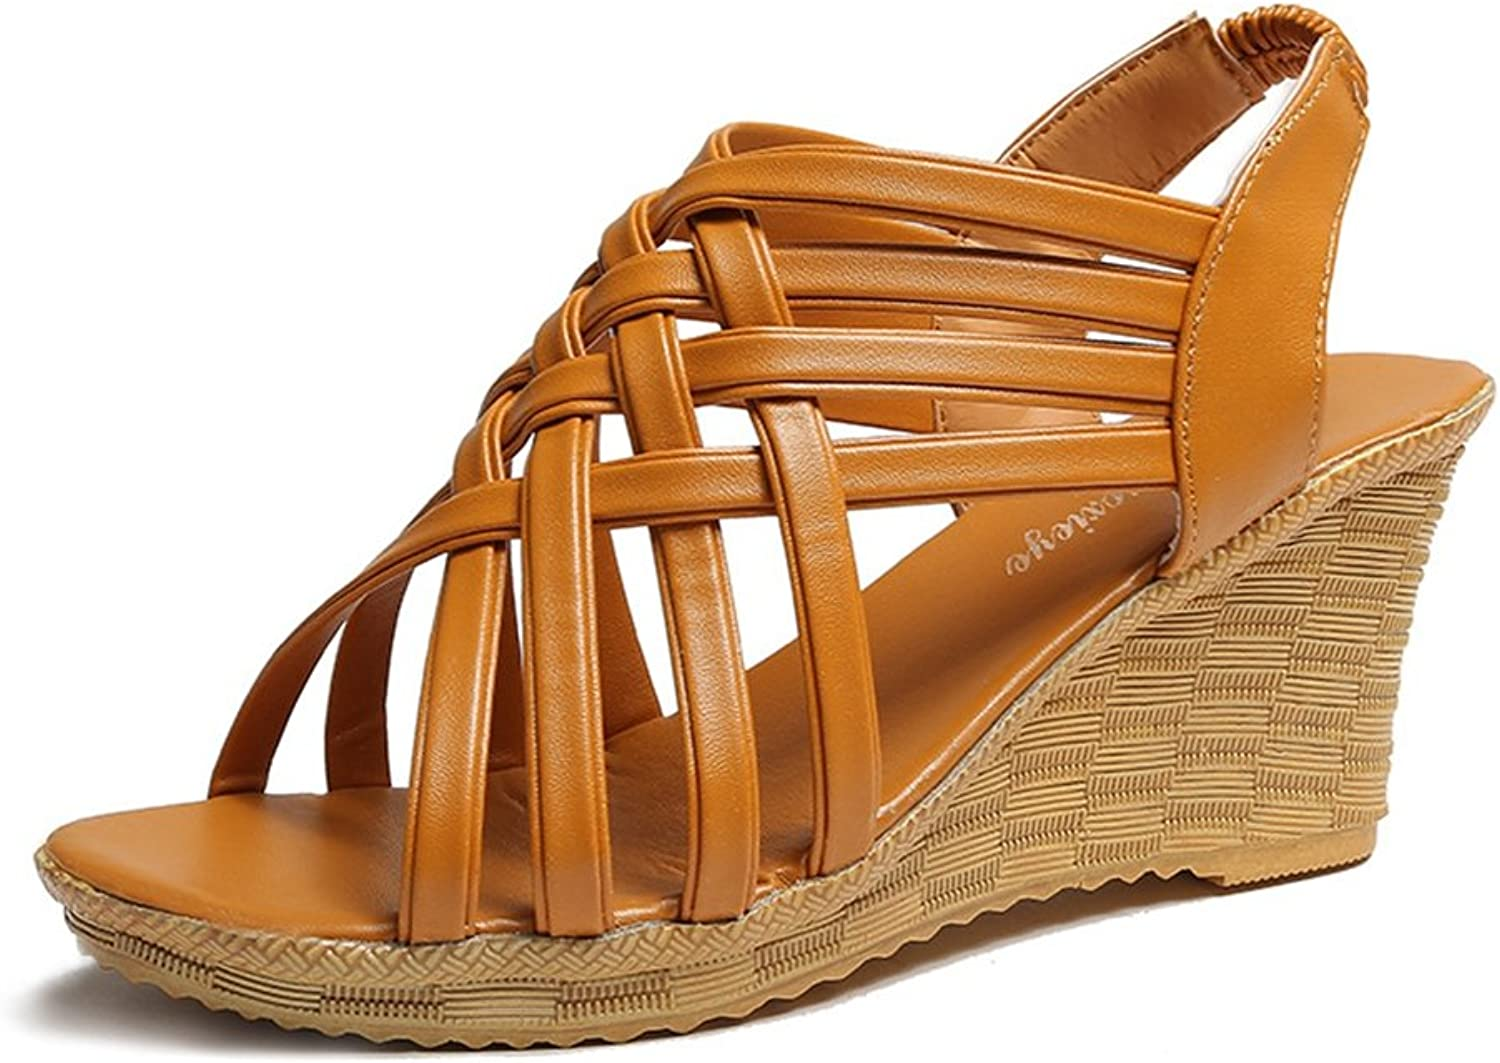 CYBLING Womens Wedge Sandals Leather Criss Cross Strappy Open Toe Roman Sandal shoes